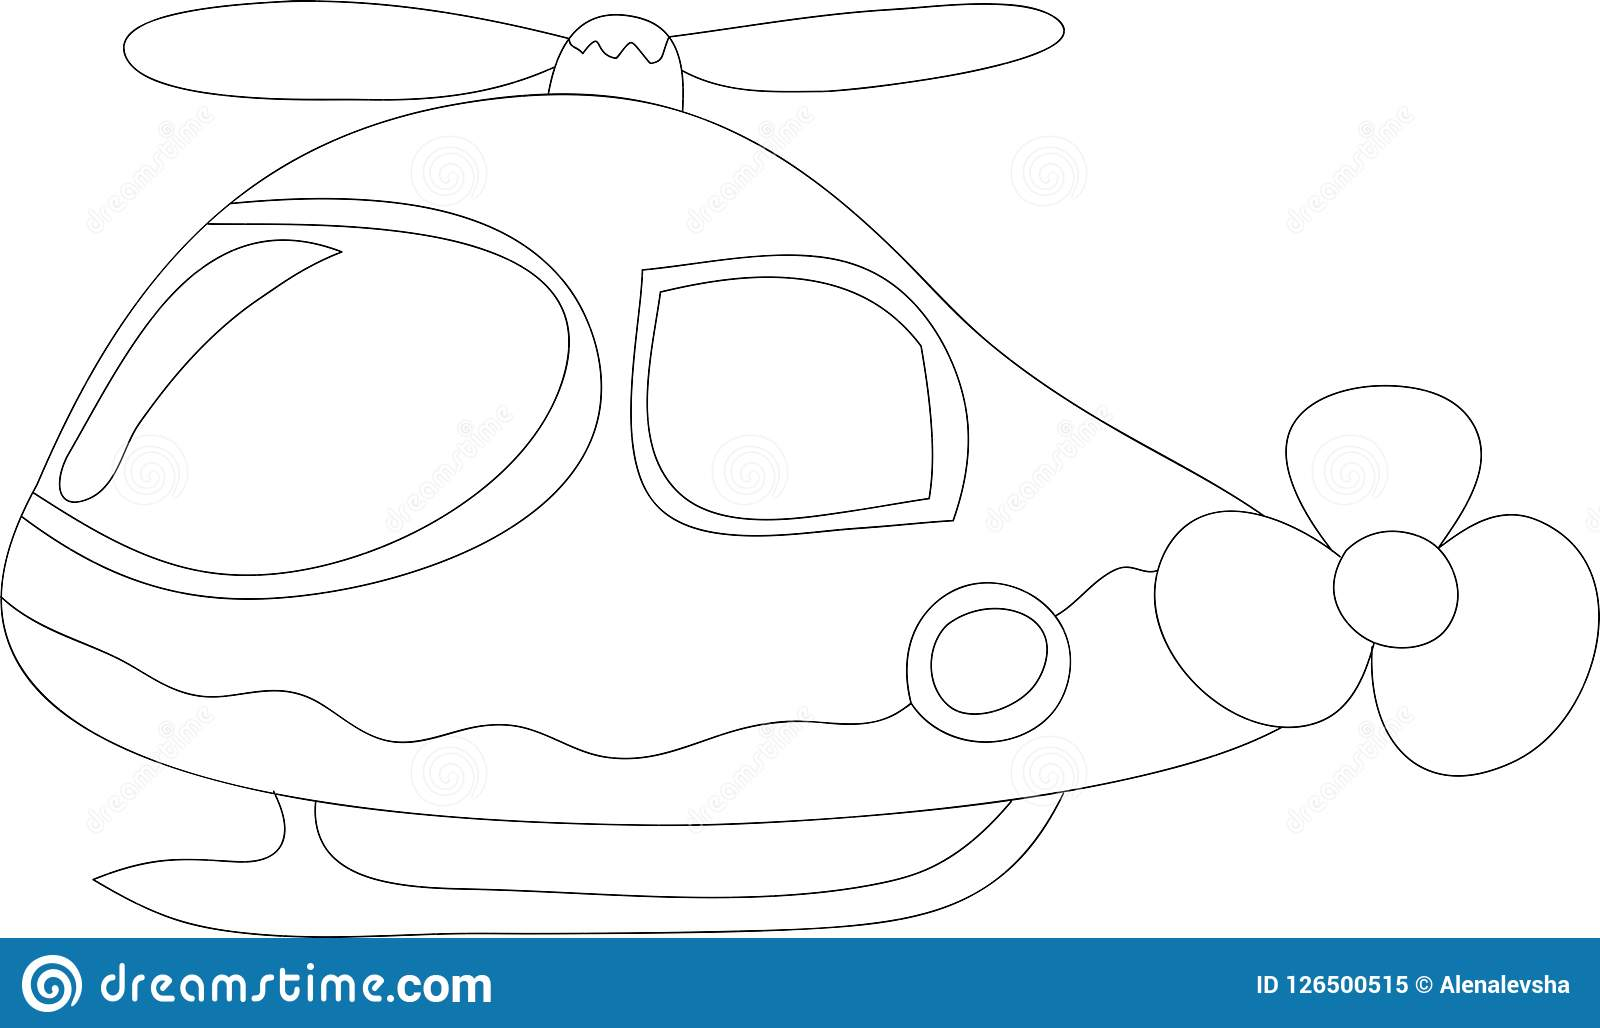 Funny helicopter for kids, black and white